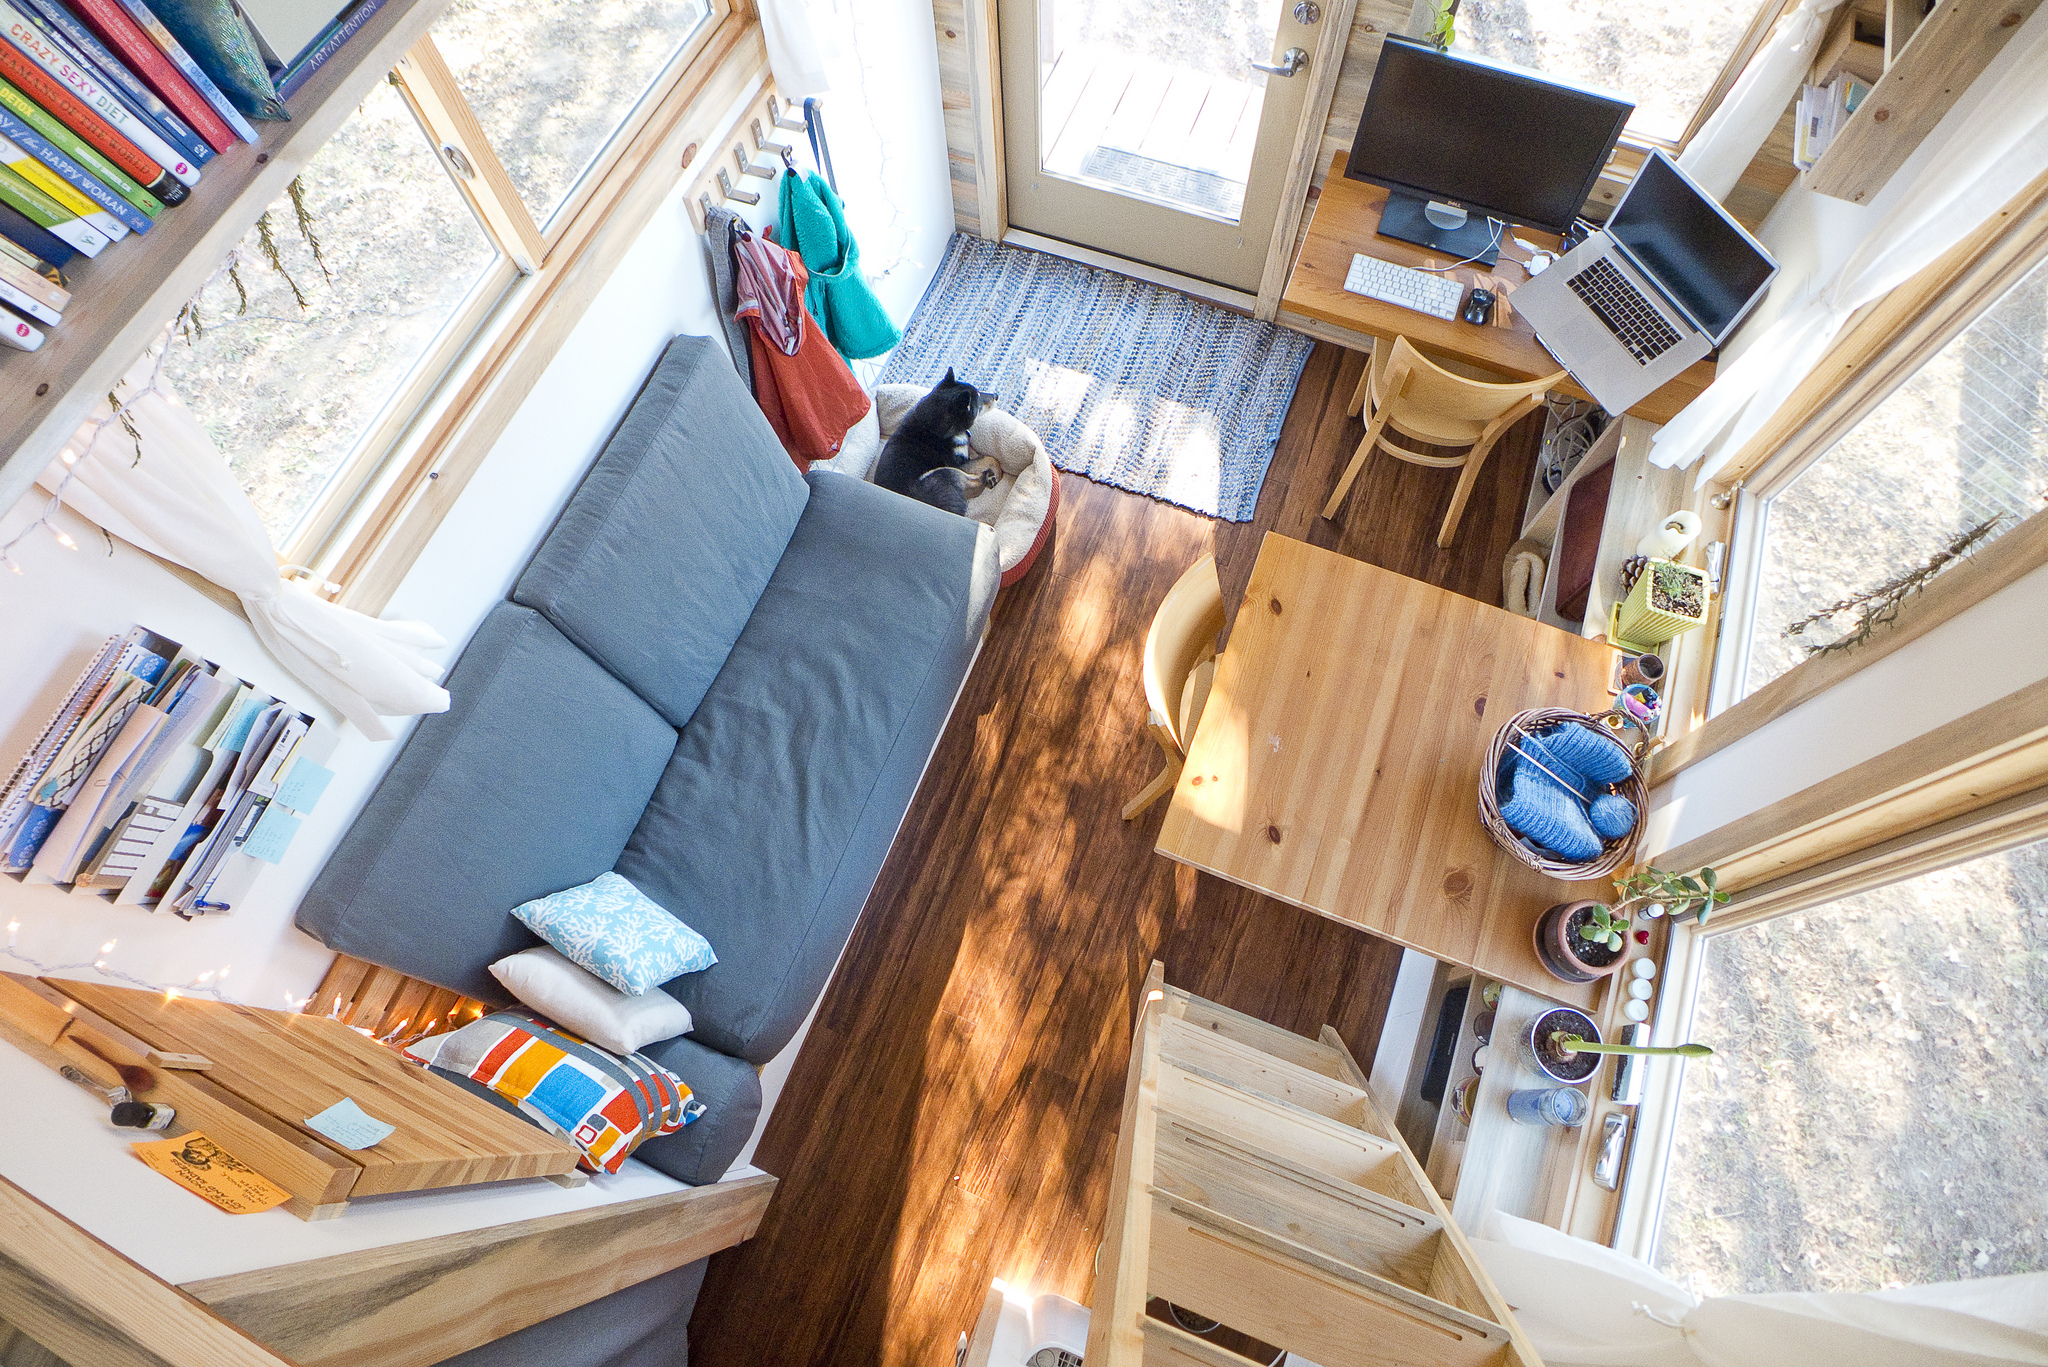 People who live in fancy tiny houses respond sunset magazine